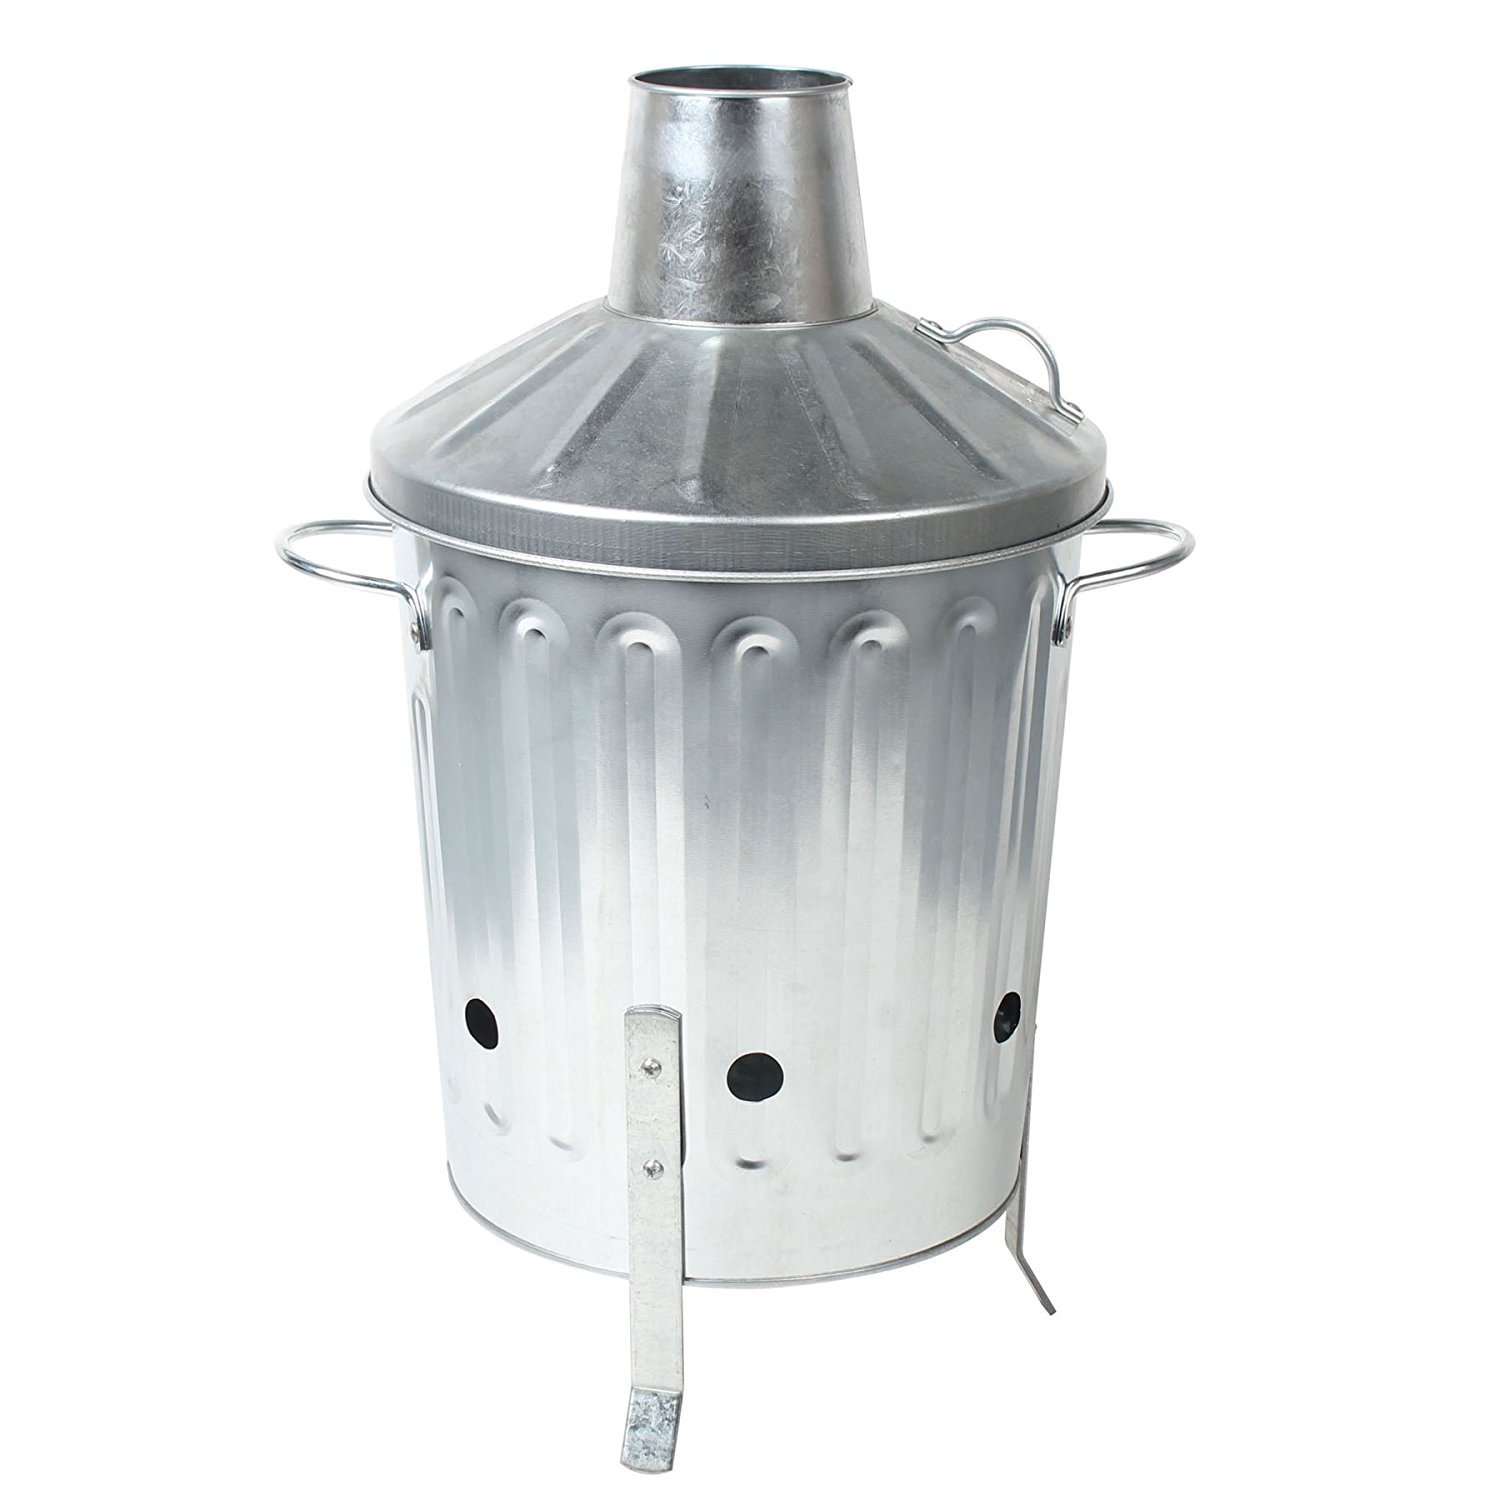 CrazyGadget Small Medium Large Extra Large Galvanised Metal Incinerator Fire Burning Bin with Special Locking Lid (15 Litre) CrazyGadget®